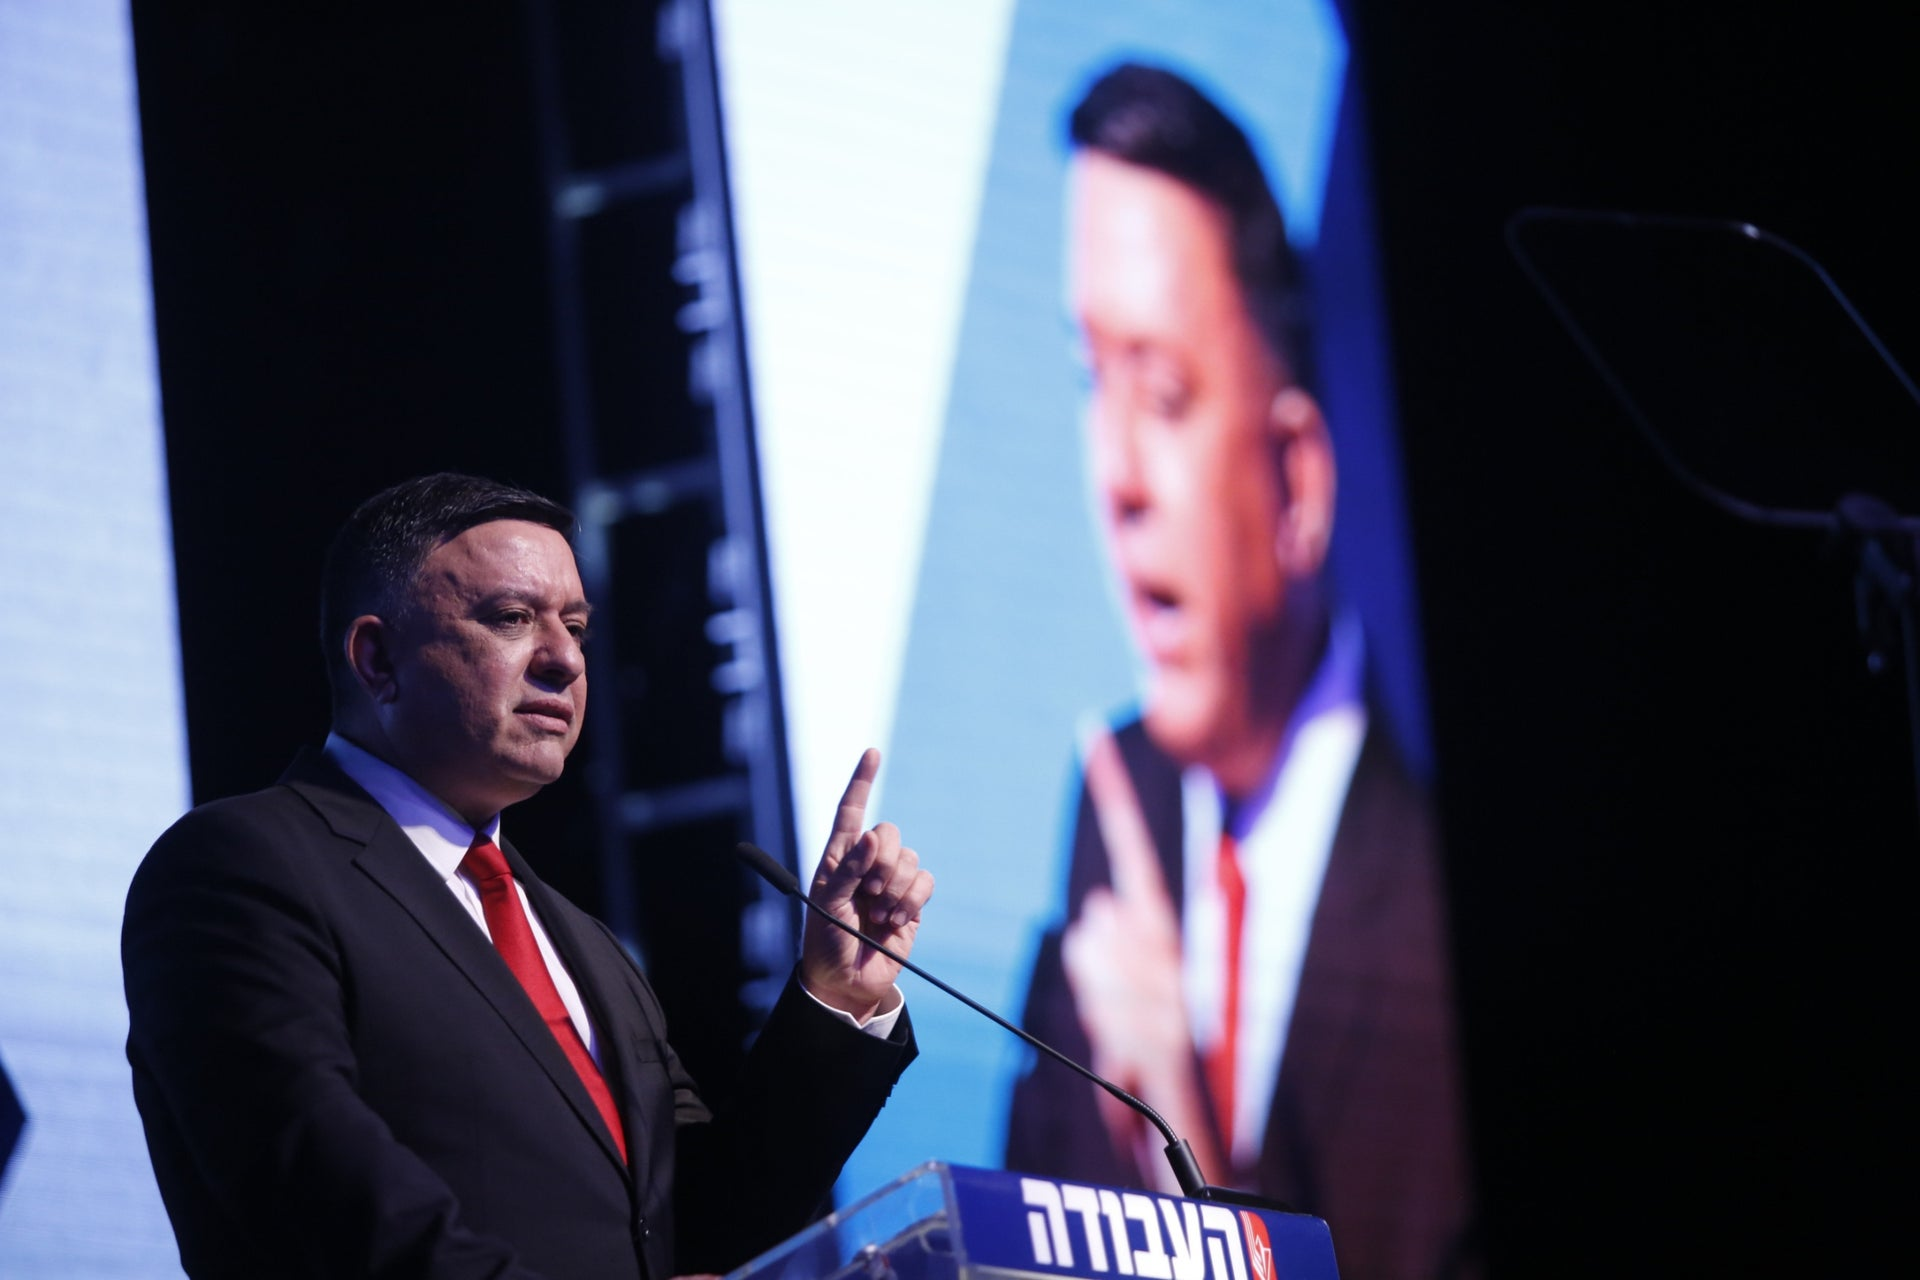 Labor Party leader Avi Gabbay launching his party's election campaign in Tel Aviv, March 18, 2019.